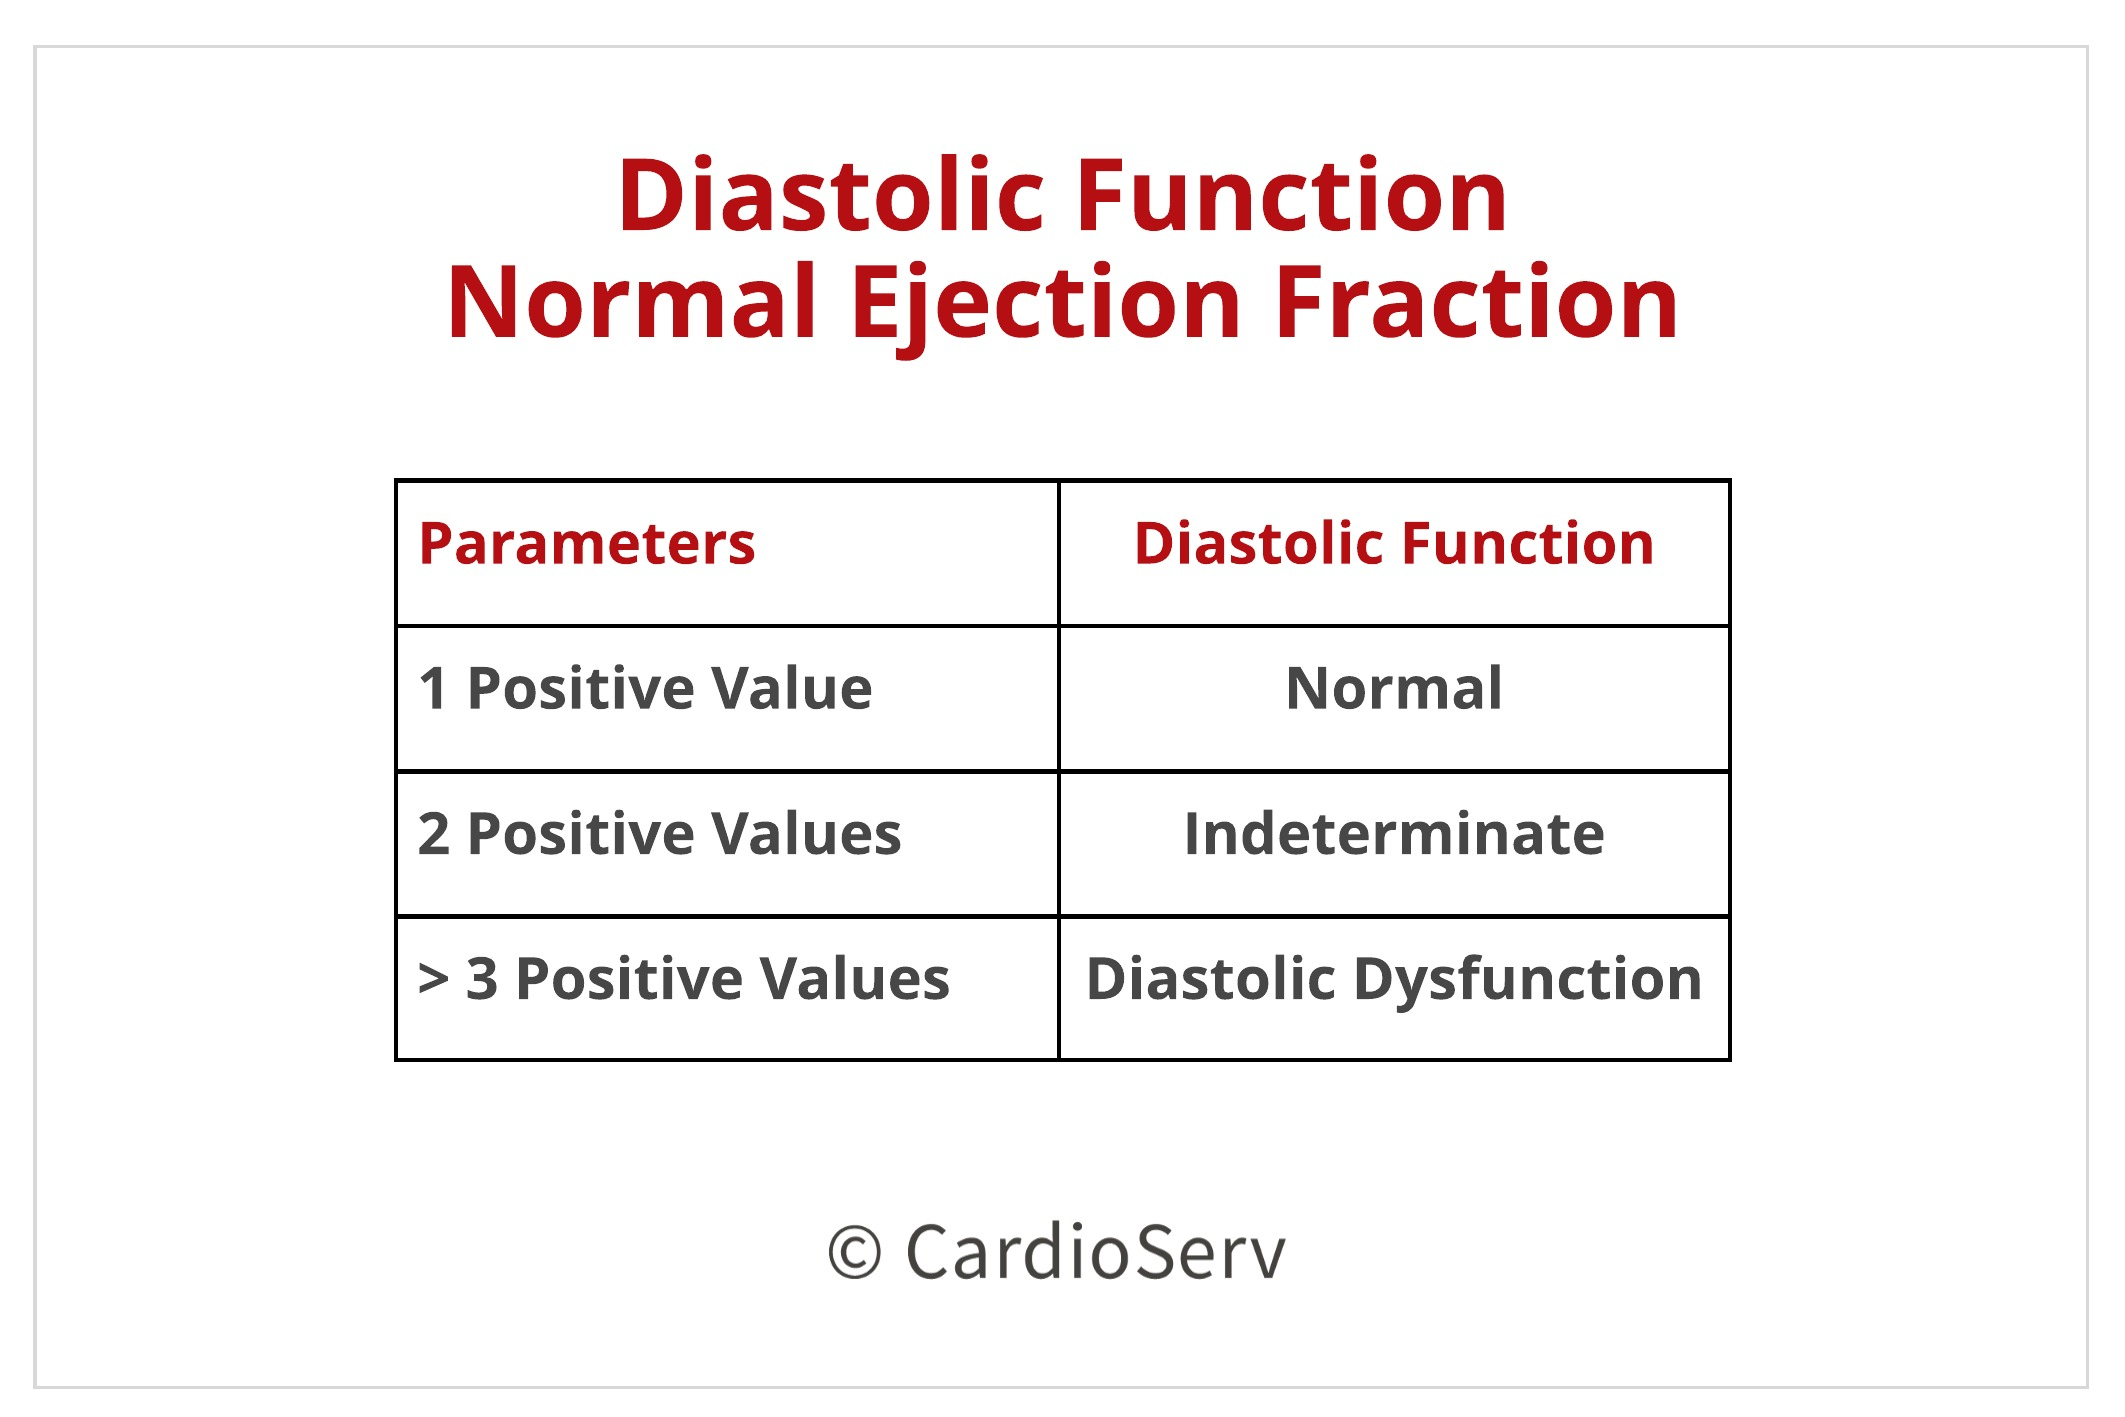 Normal Ejection Fraction Findings for Diastolic Function